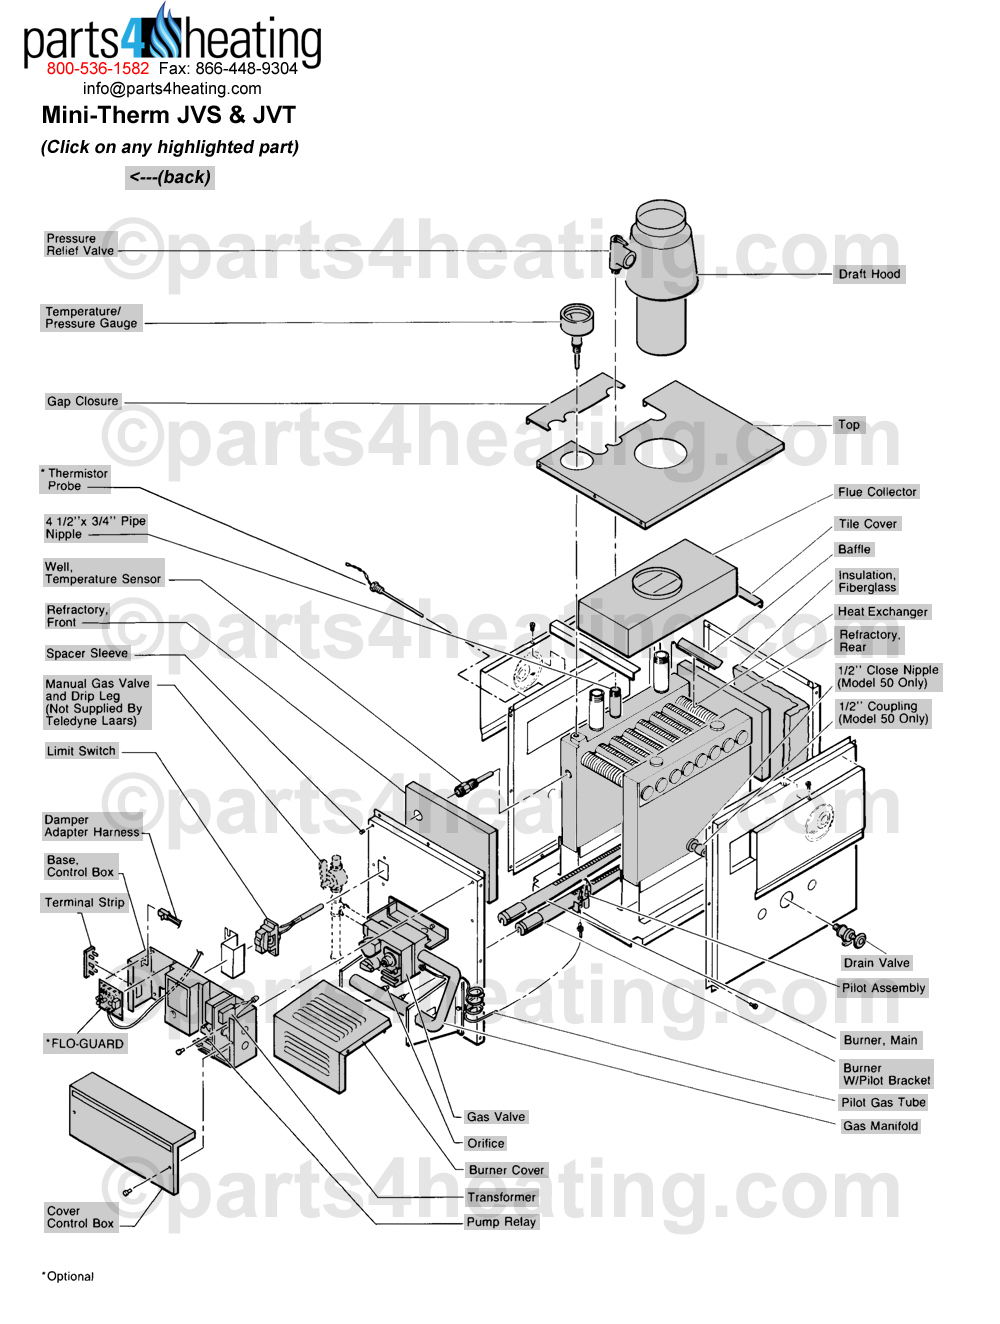 Utica Boiler Parts Diagram Trusted Wiring Diagrams Burnham U2022 Residential Steam